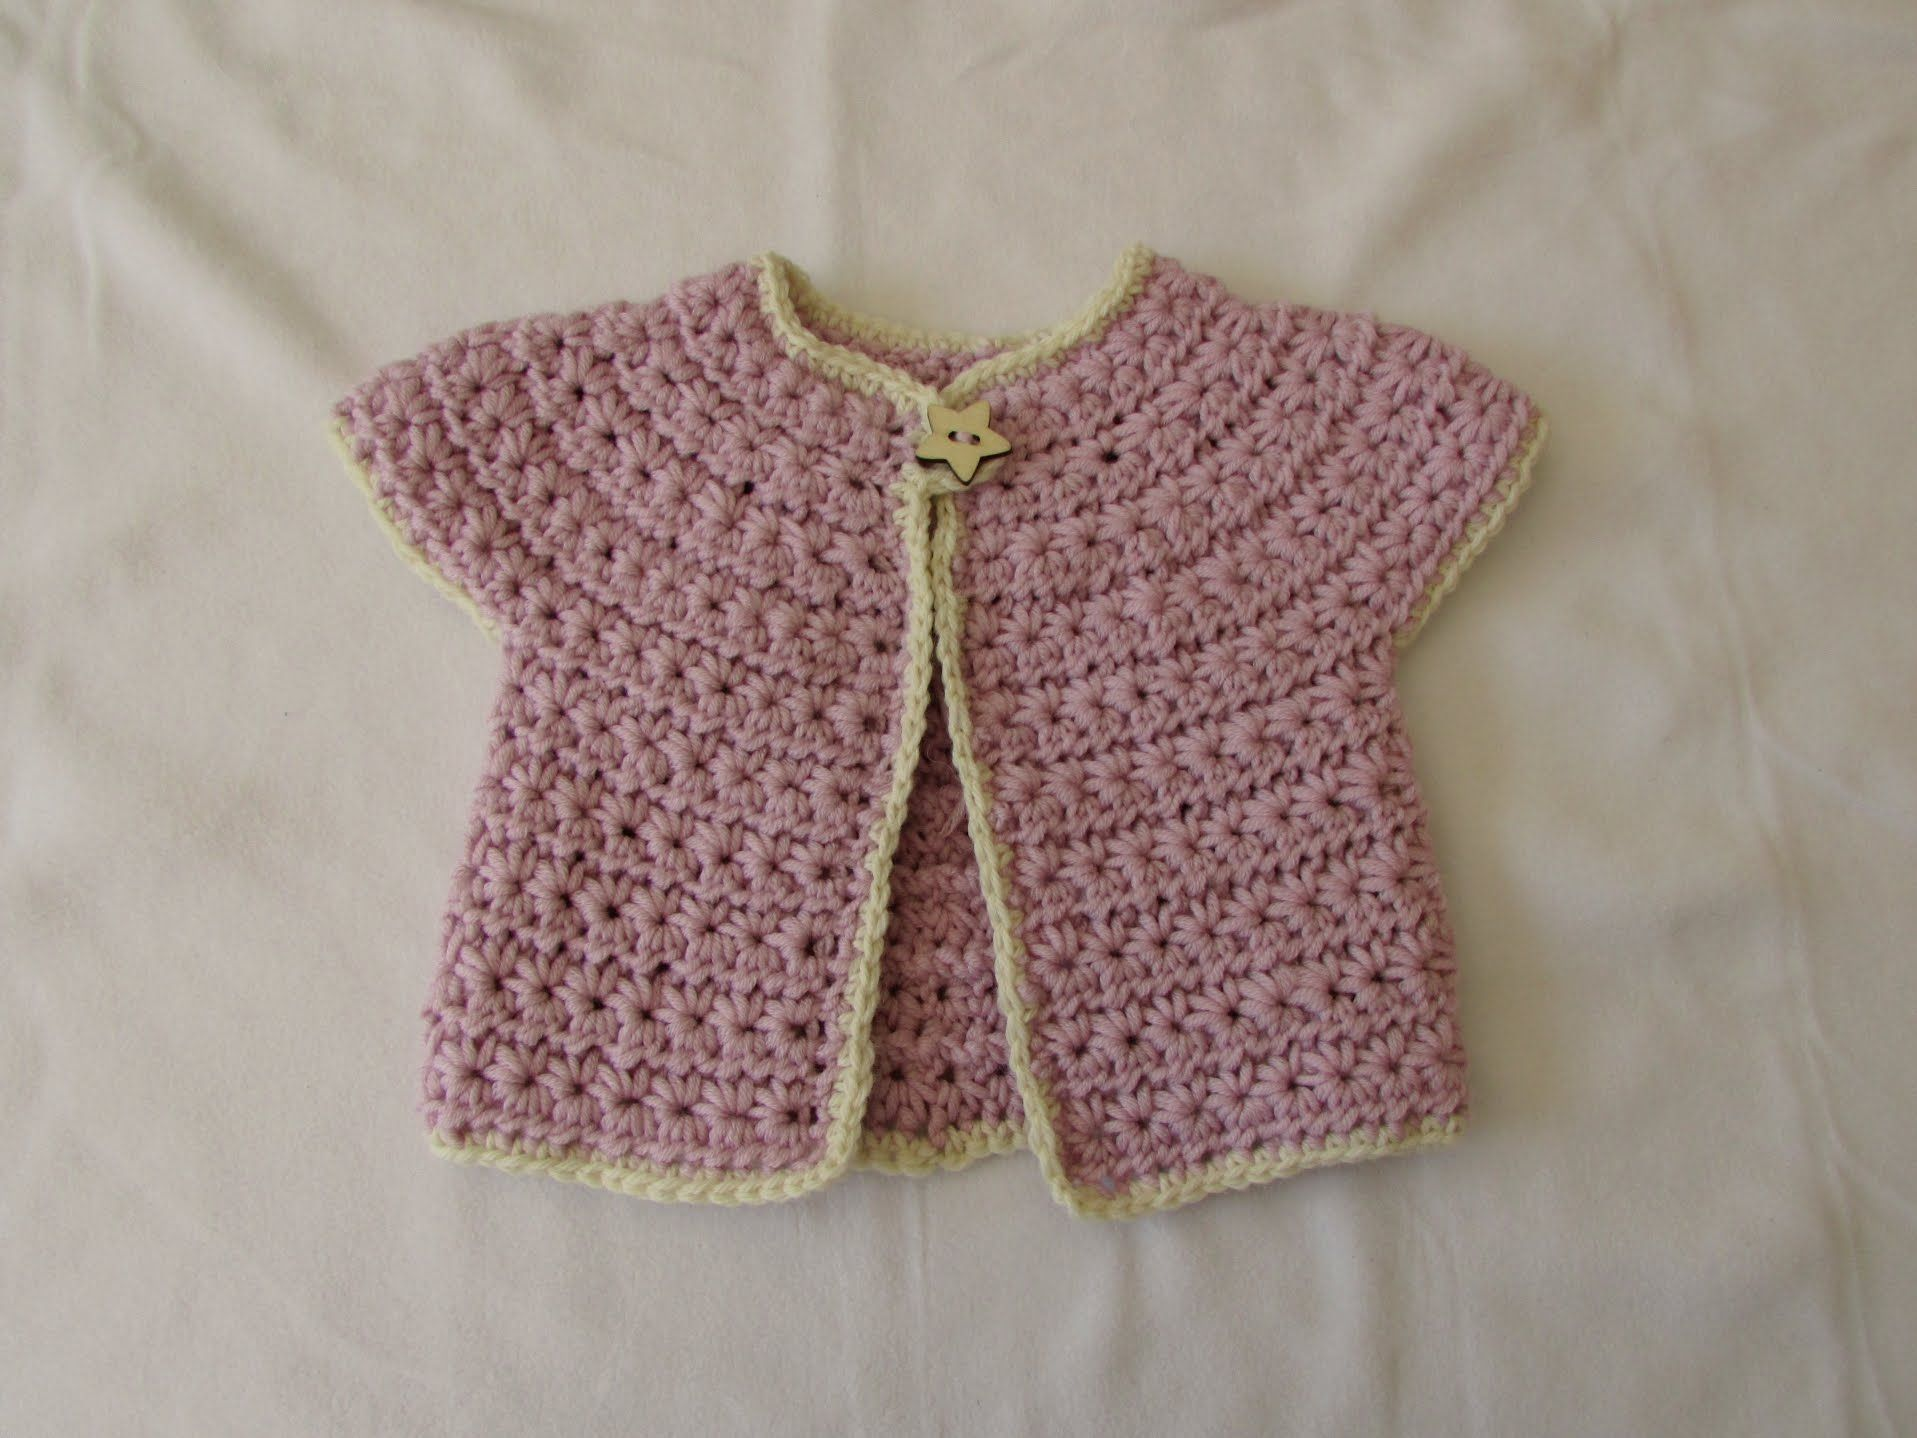 Correction make a foundation chain of 54 instead of 52 as stated how to crochet a chunky star stitch baby cardigan sweater jumper foundation chain 54 not 52 bankloansurffo Images